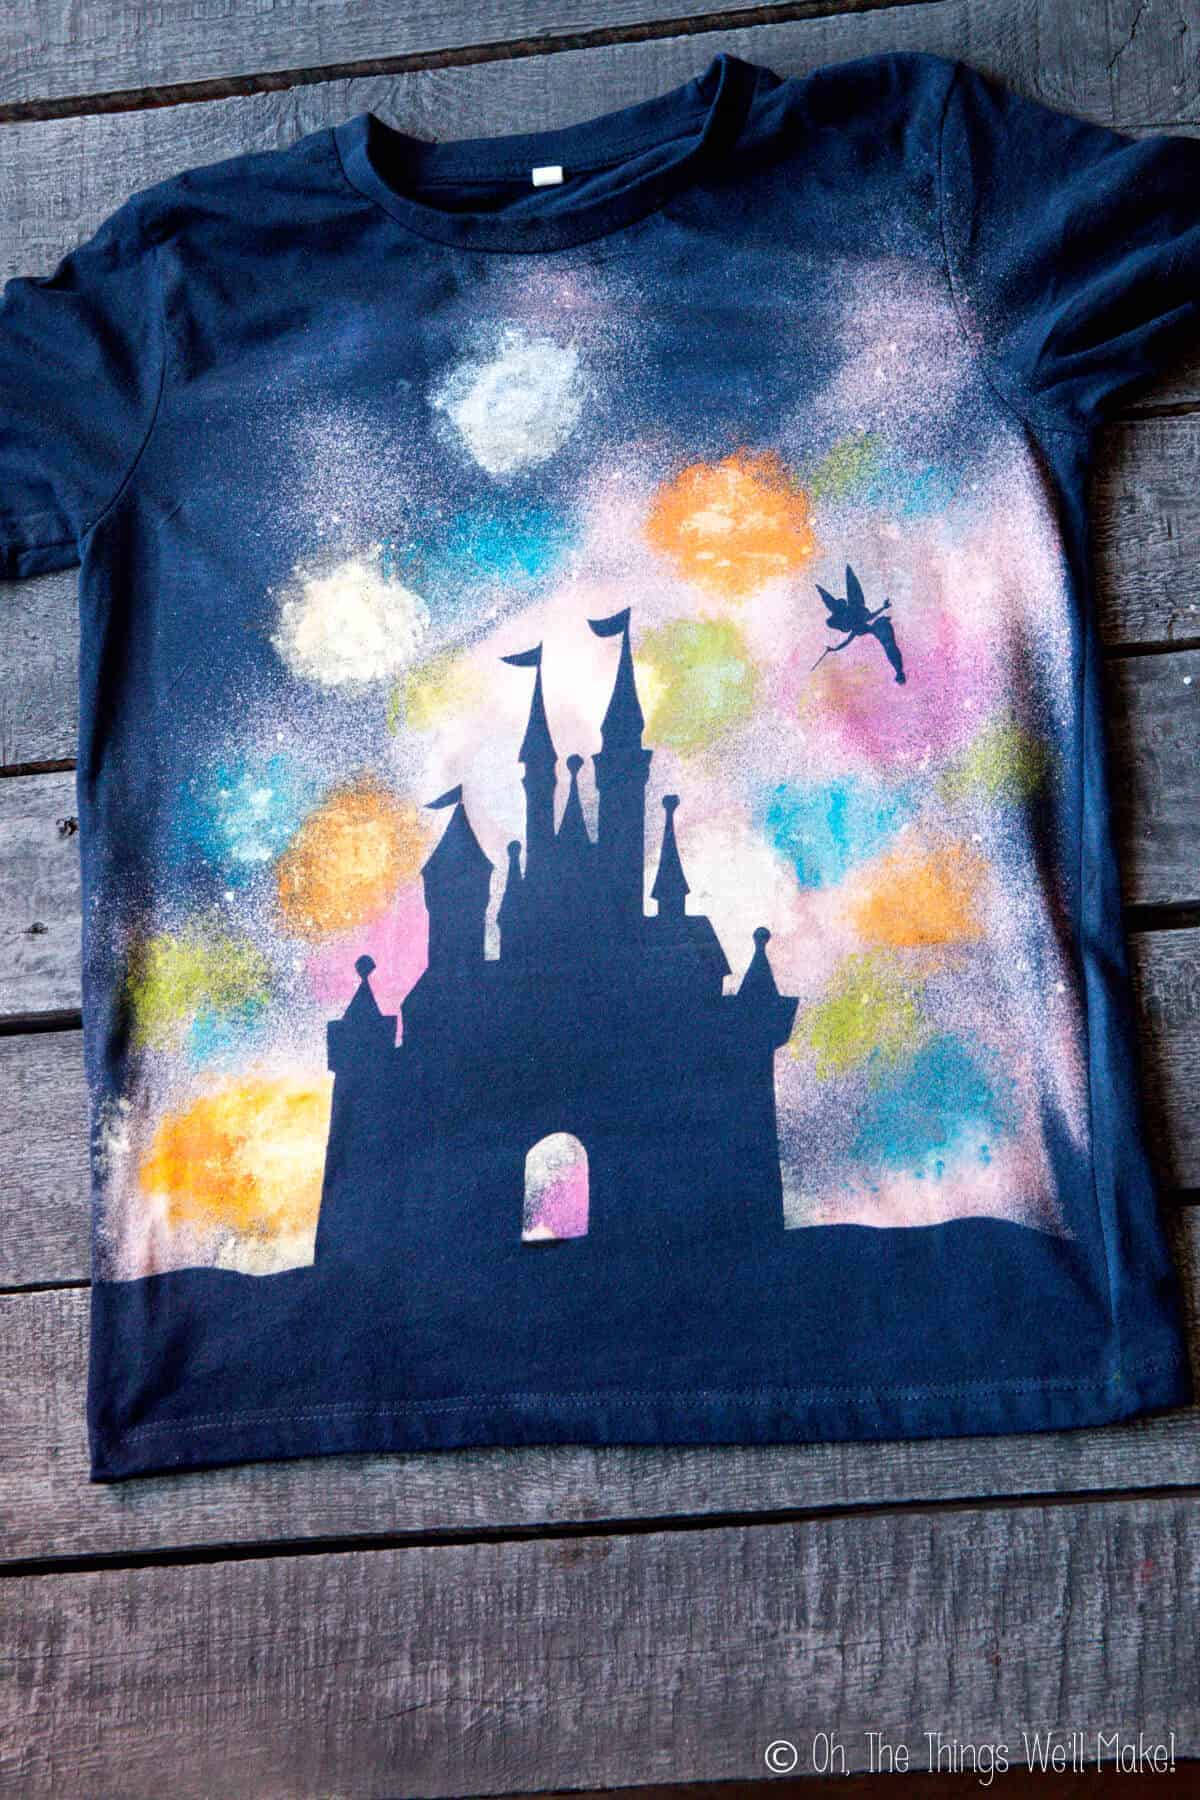 Navy Blue t-shirt featuring a silhouette of a Disney castle and Tinkerbell flying by it as seen against painted fireworks